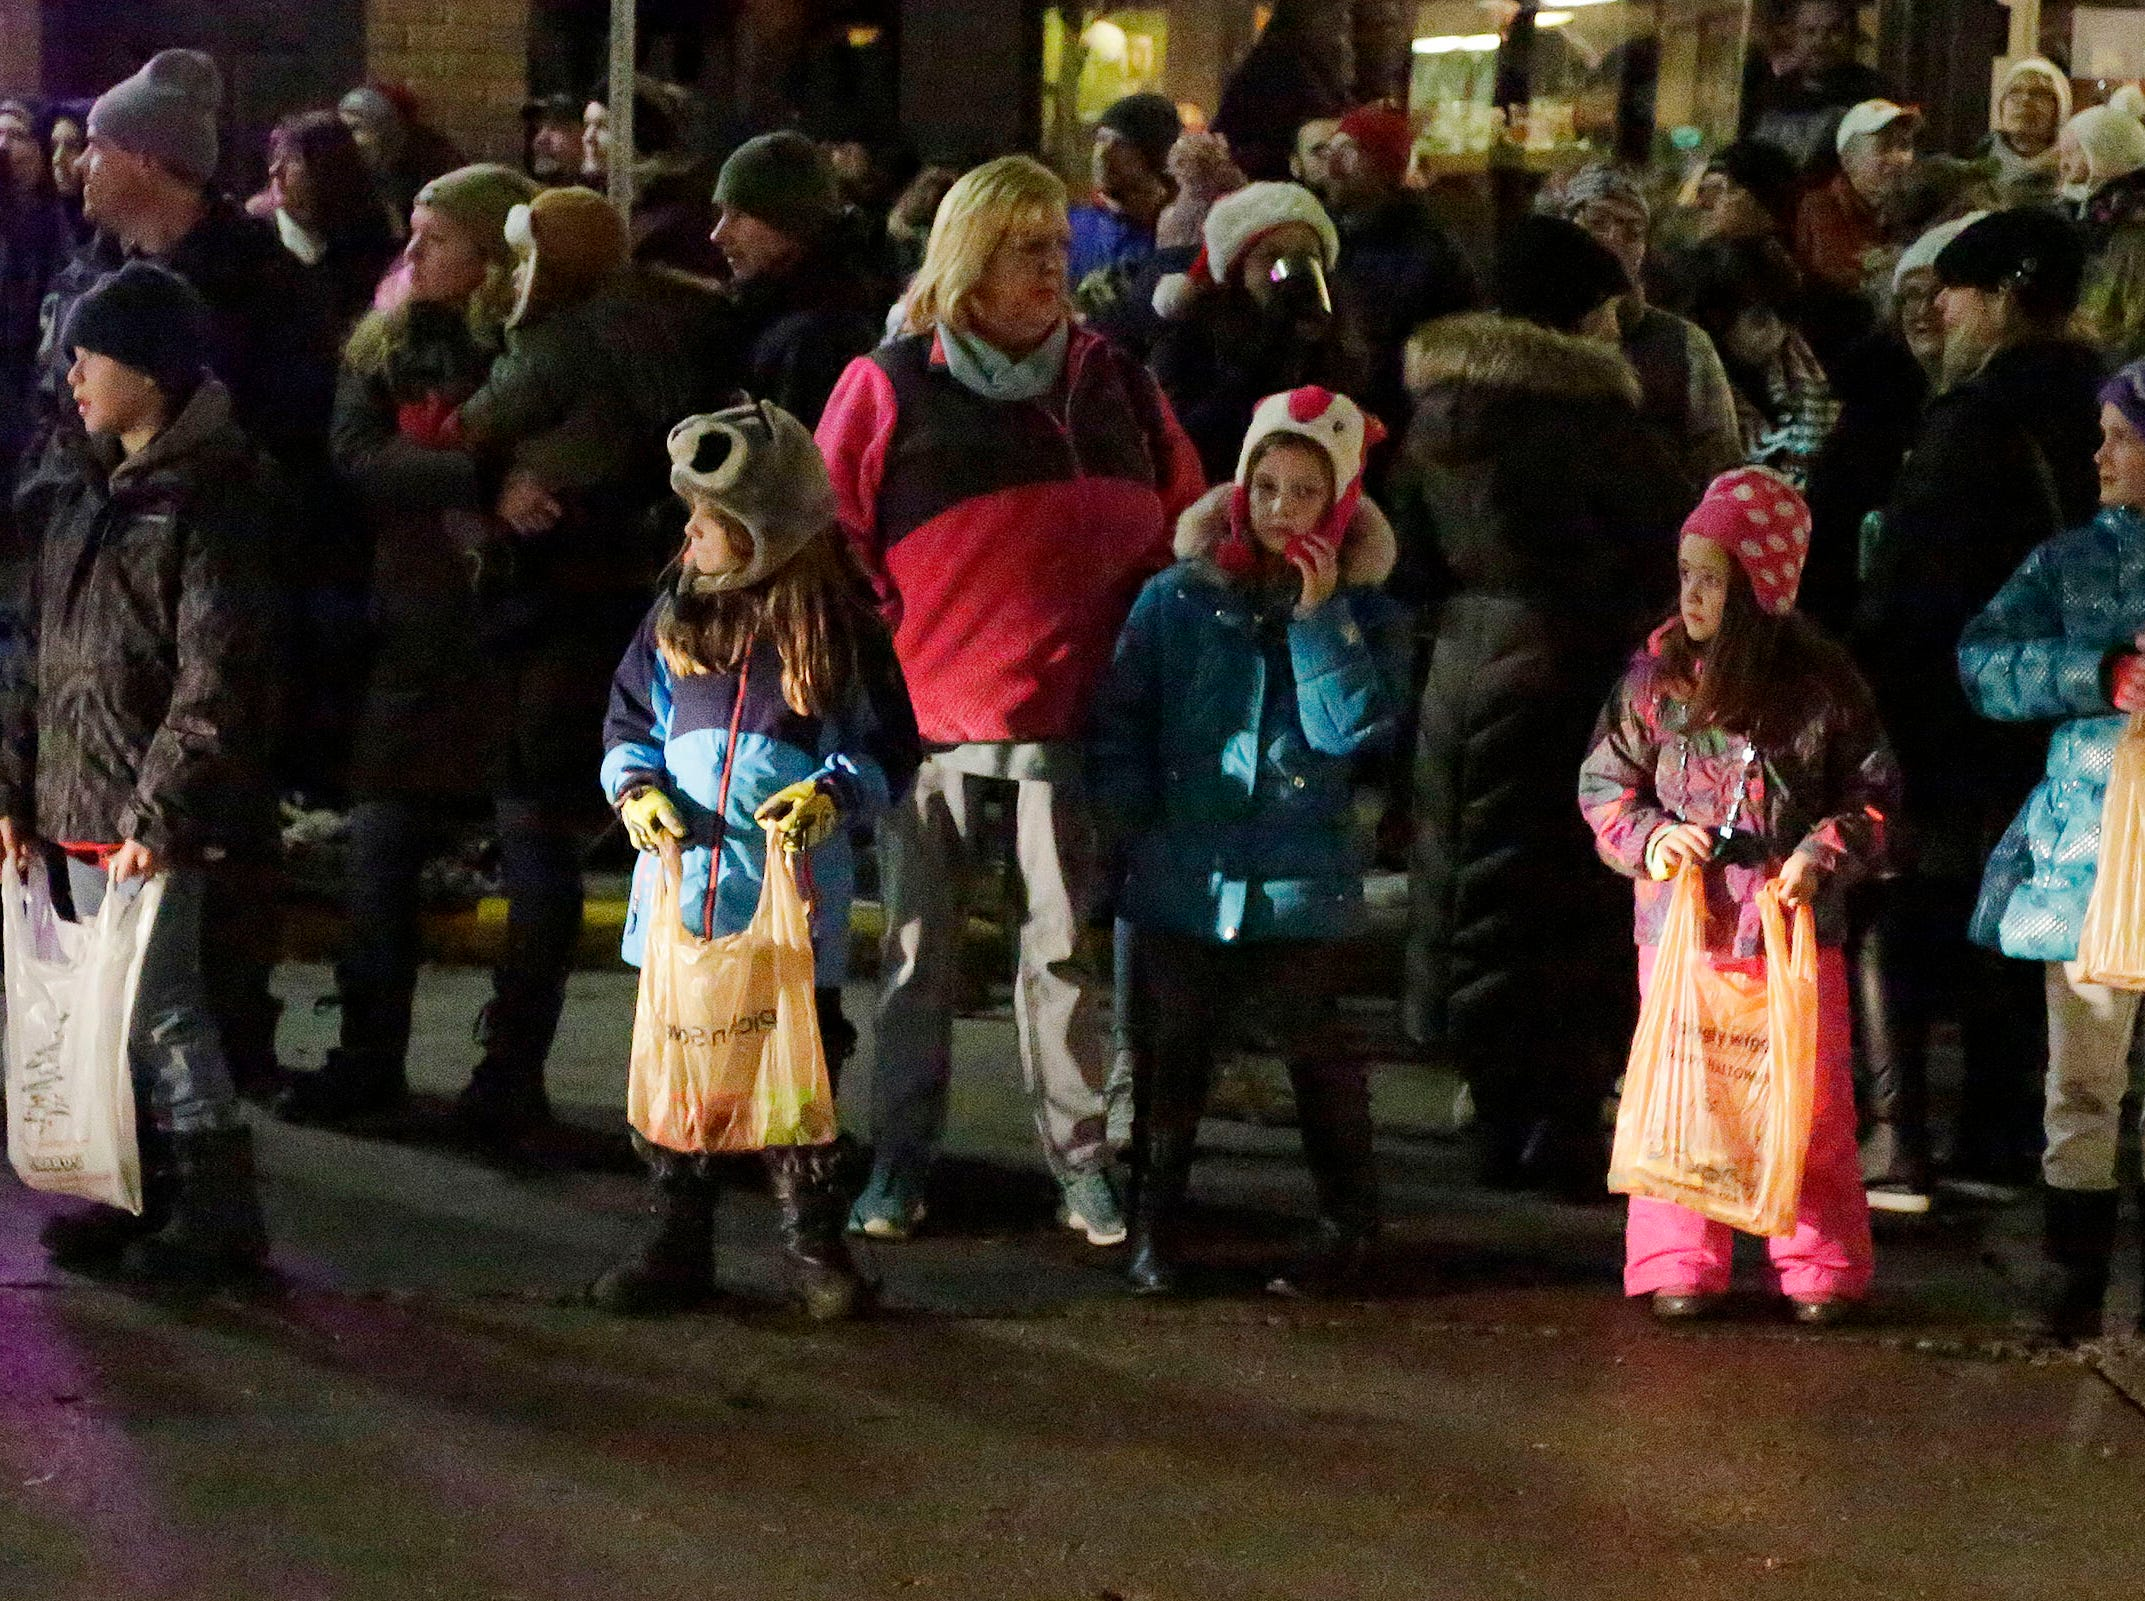 Children wait with bags for candy at the Plymouth Christmas Parade, Friday, November 23, 2018, in Plymouth, Wis.